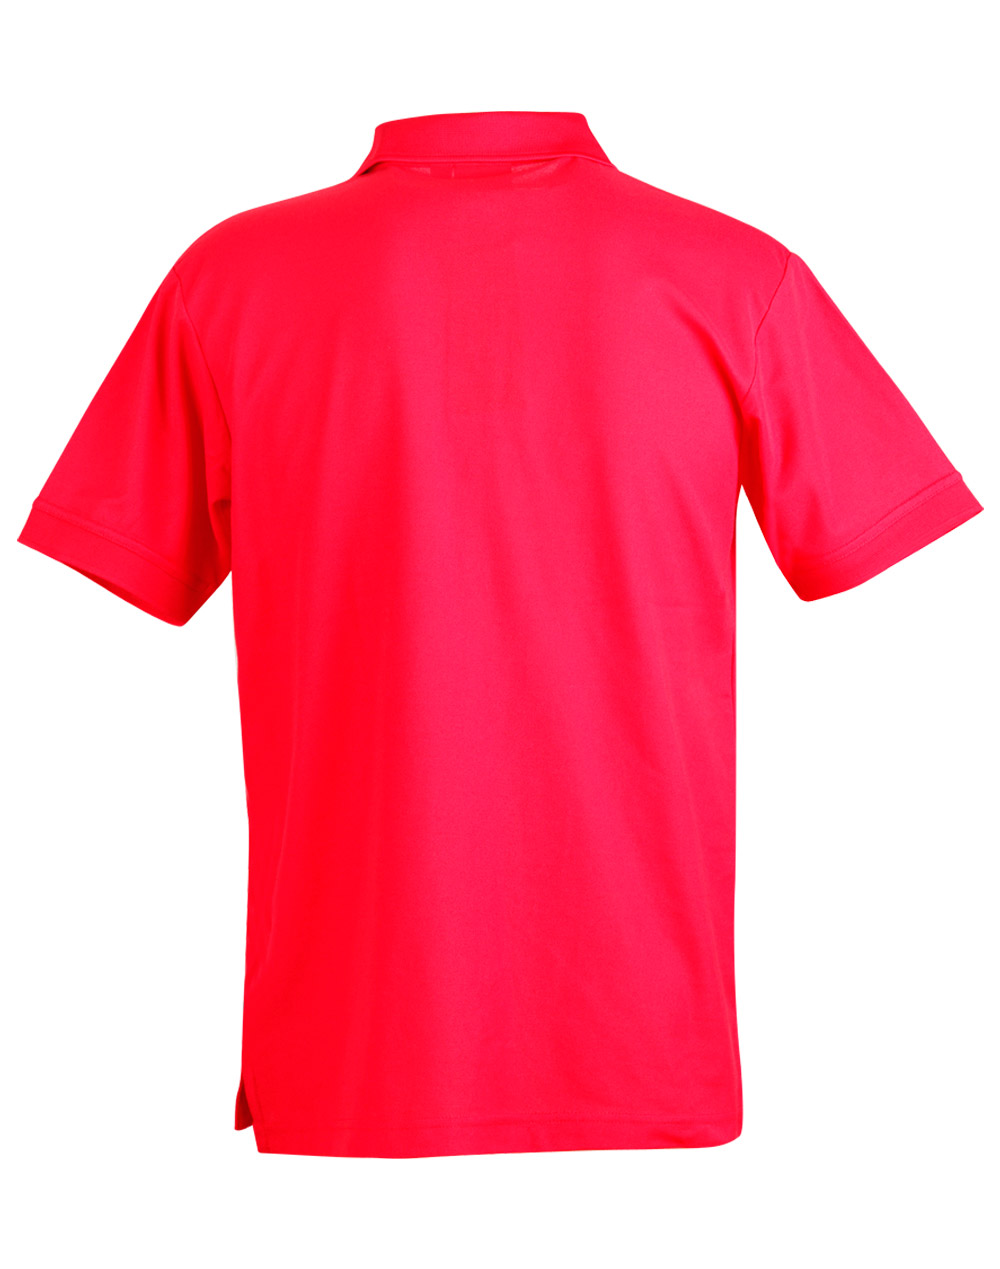 https://s3-ap-southeast-1.amazonaws.com/ws-imgs/POLOSHIRTS/PS63_Red_Back.jpg